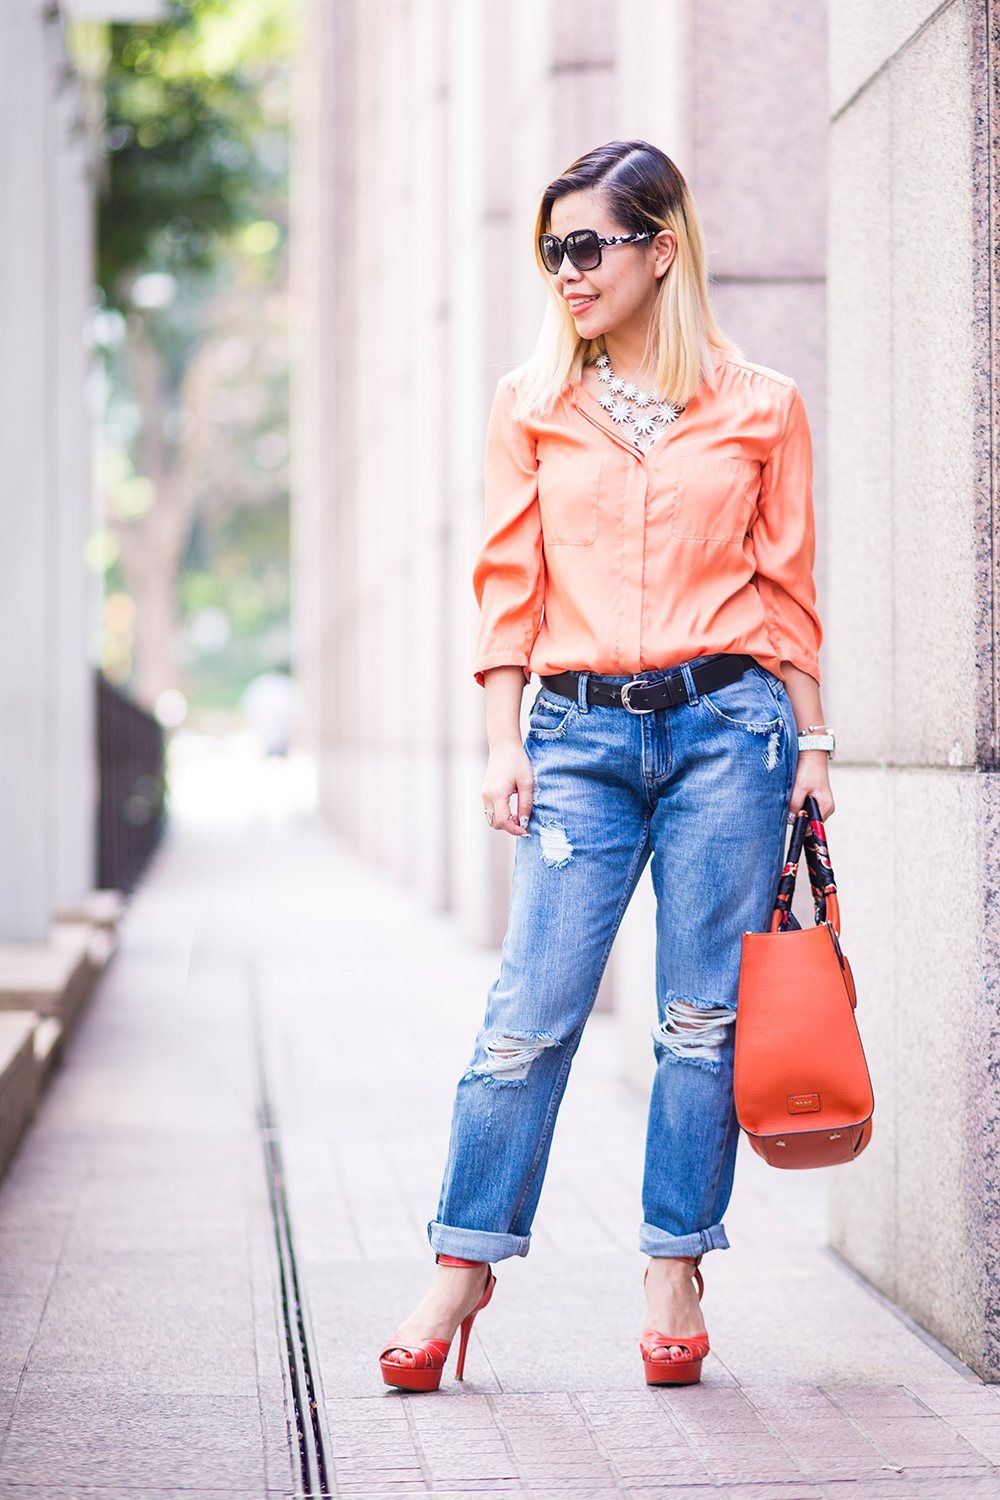 CrystalPhuong- Singapore Fashion Blog- How to wear boyfriend jeans?